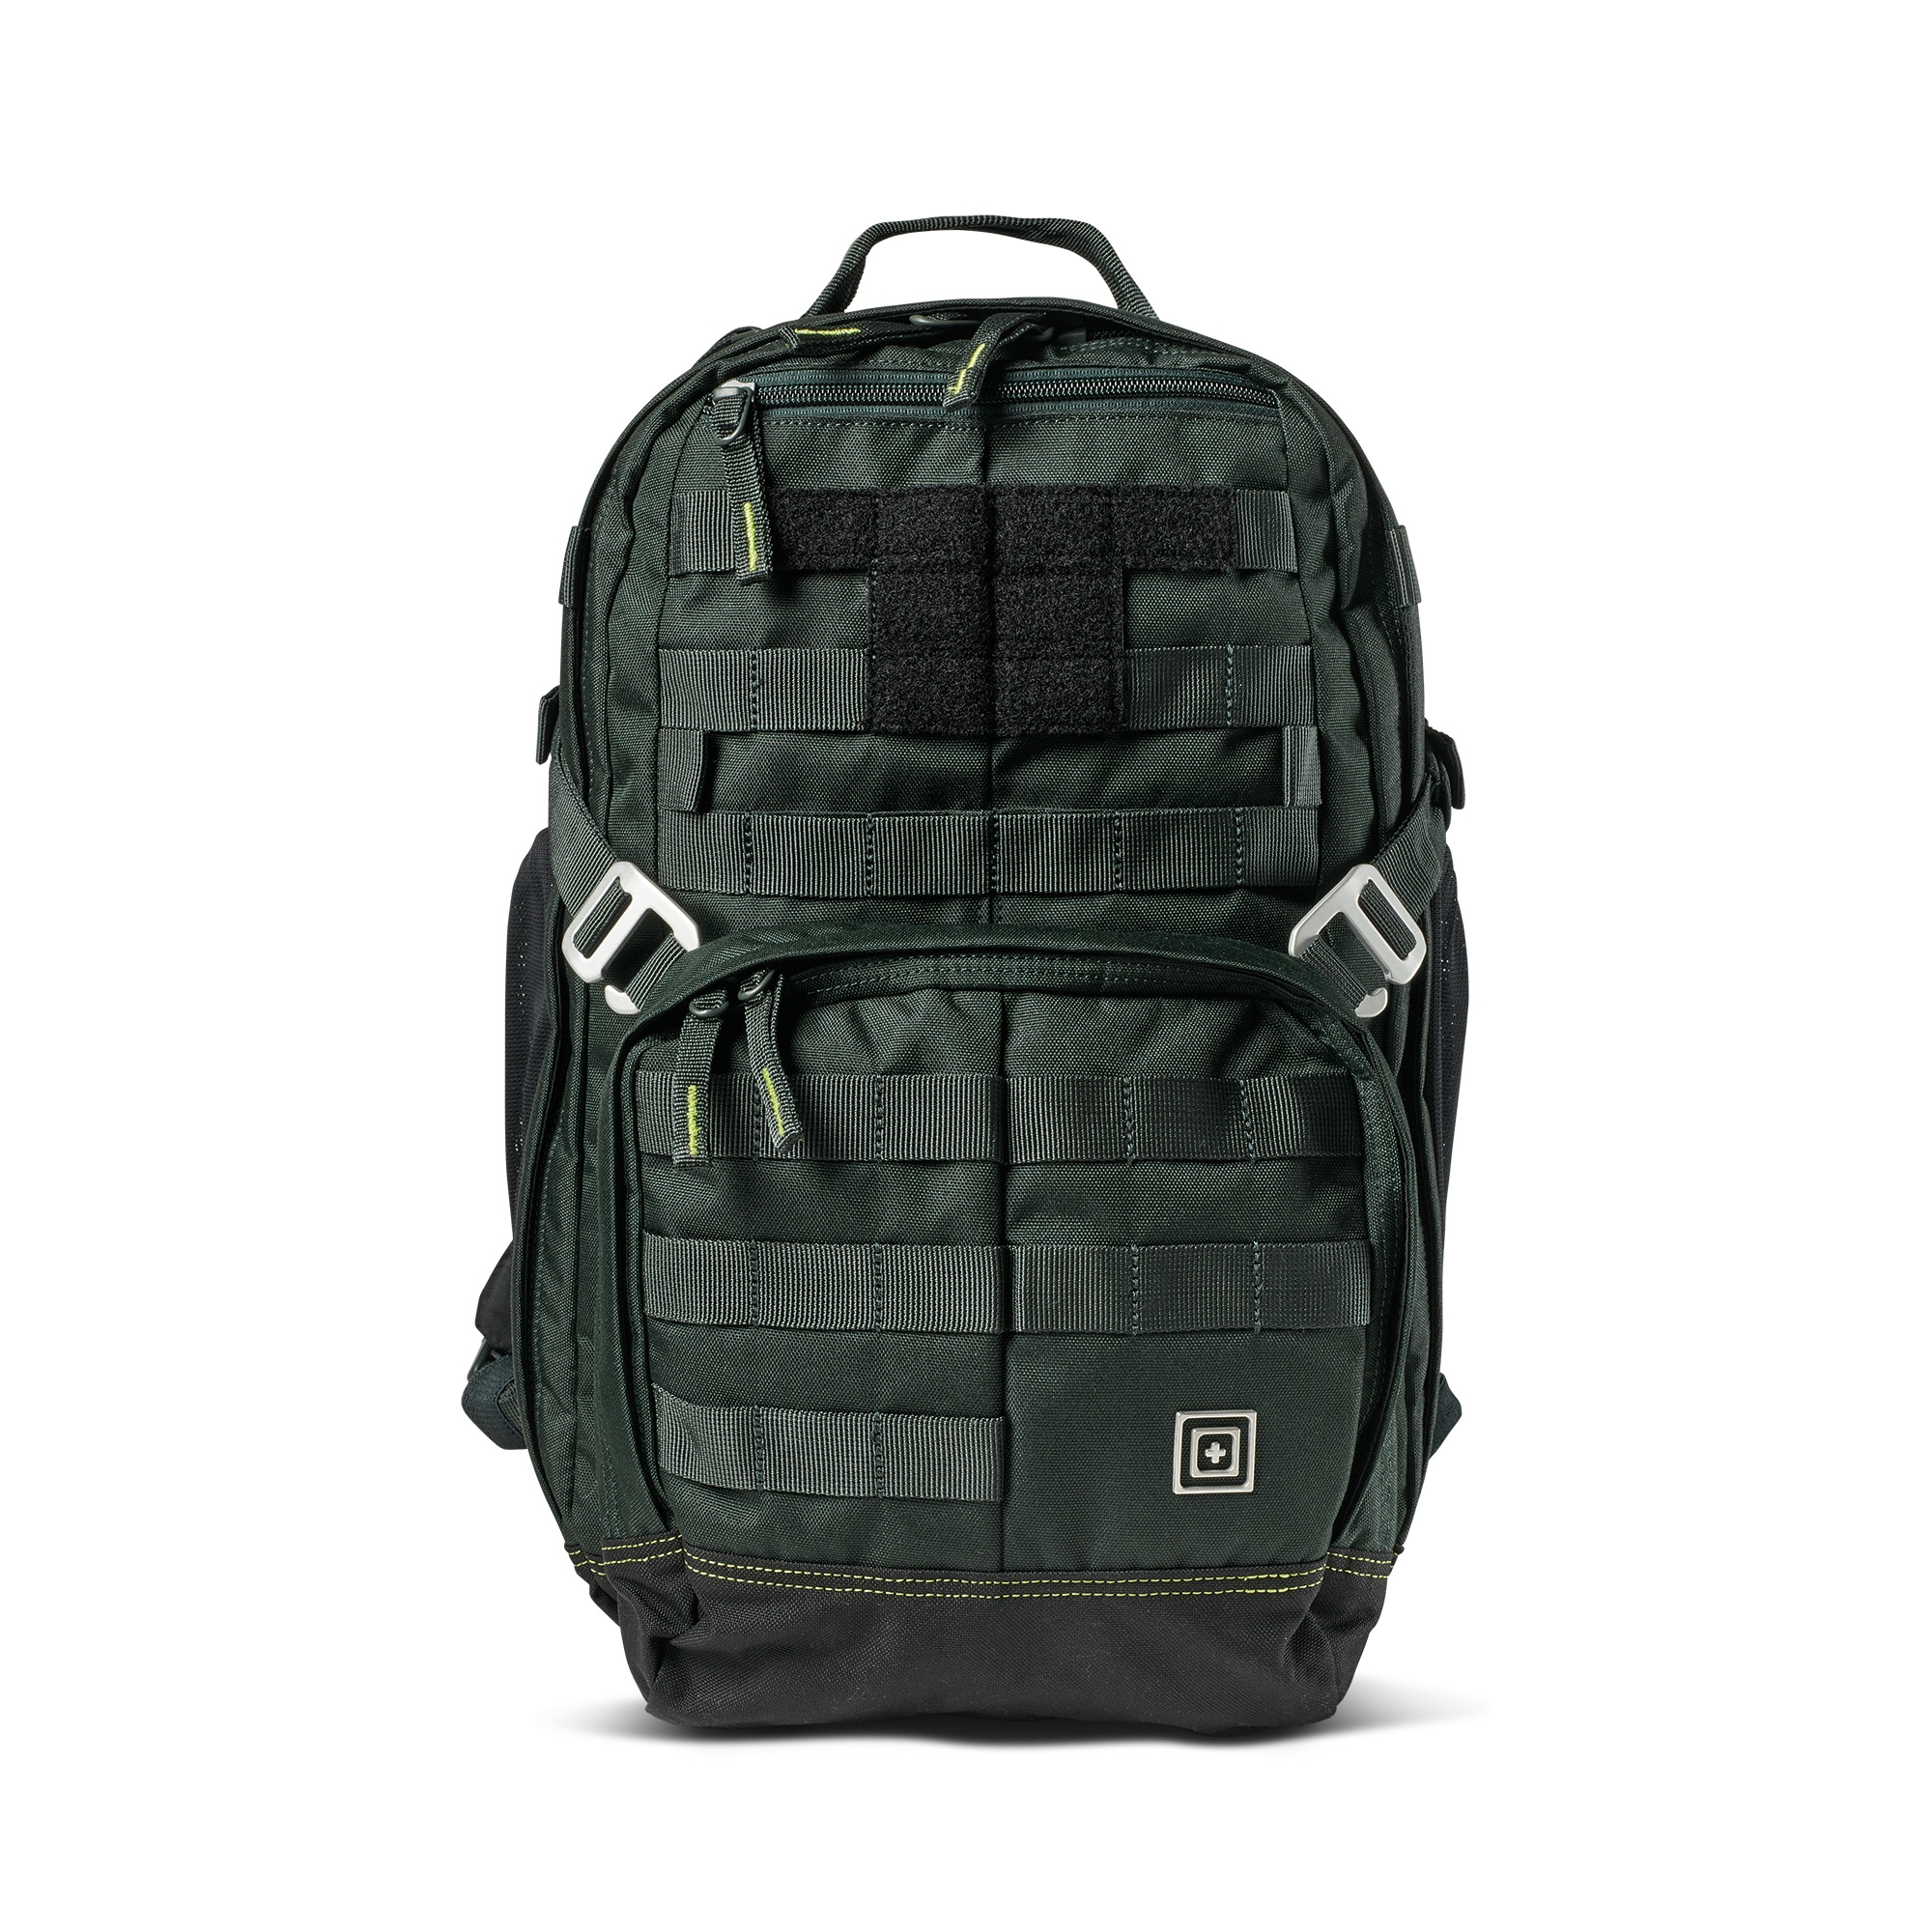 5.11 Tactical Women's Mira 2-in-1 Pack (White)